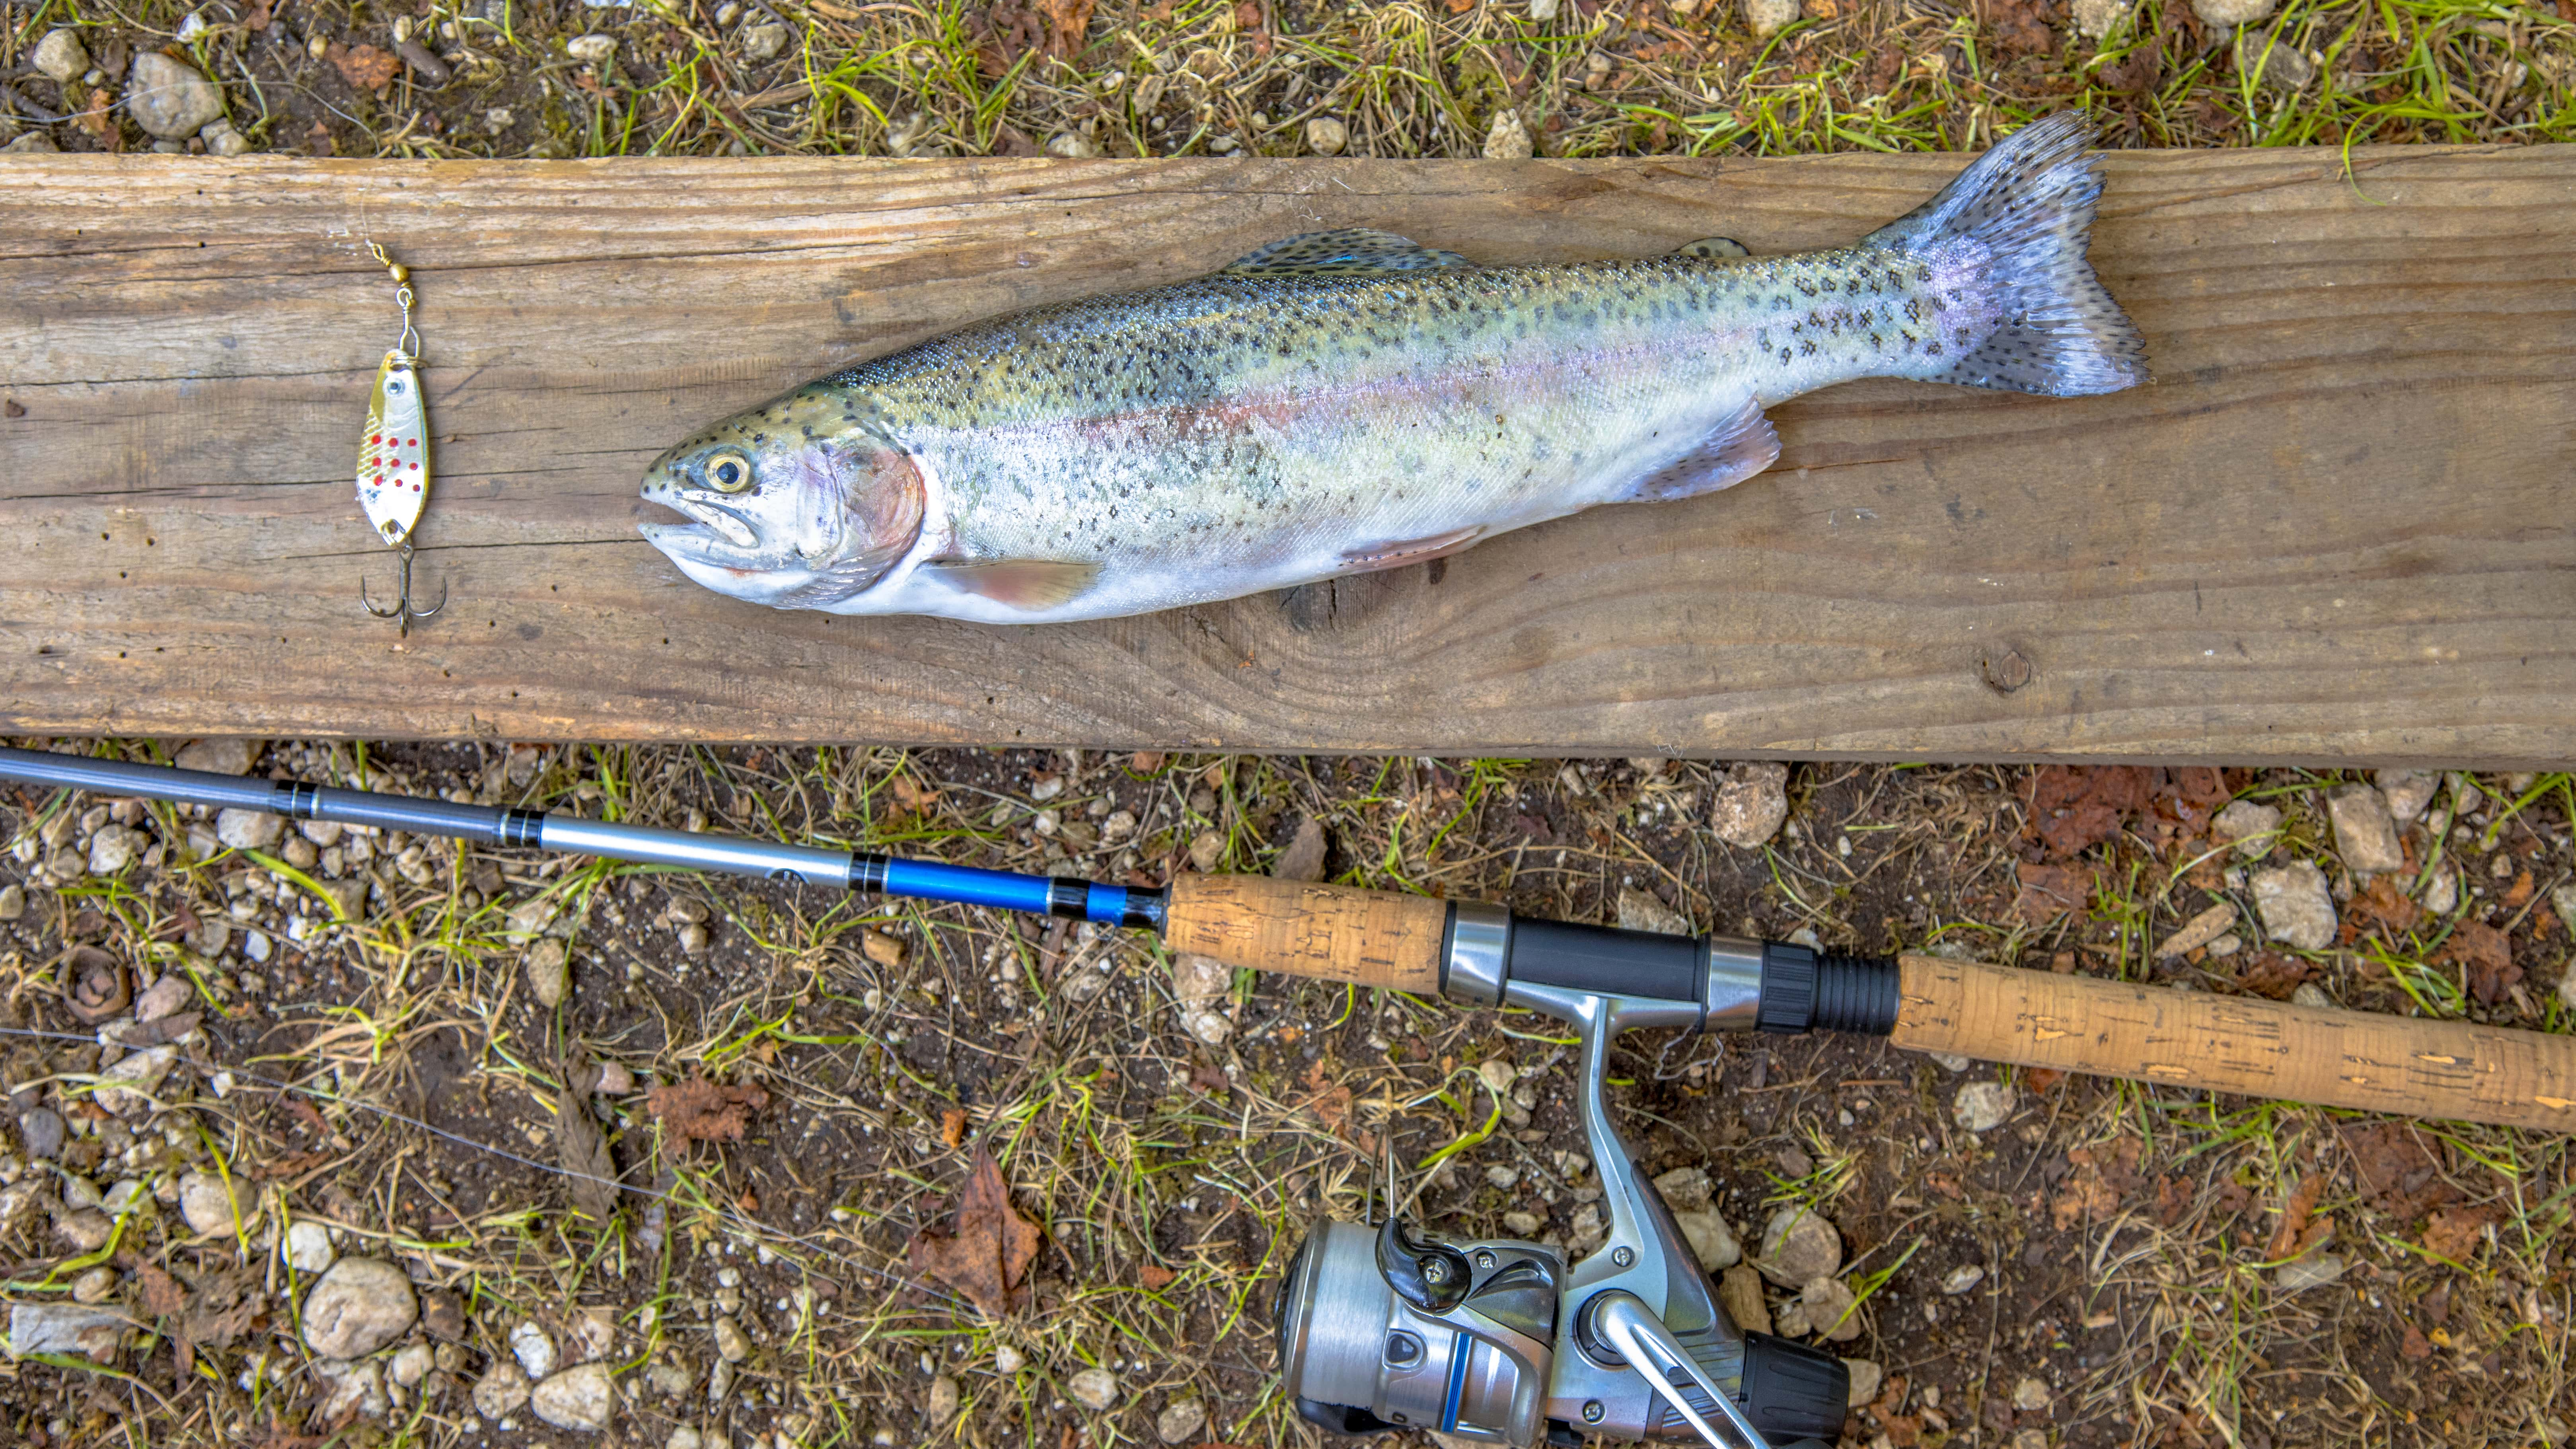 rainbow trout on a wooden board next to a fishing rod